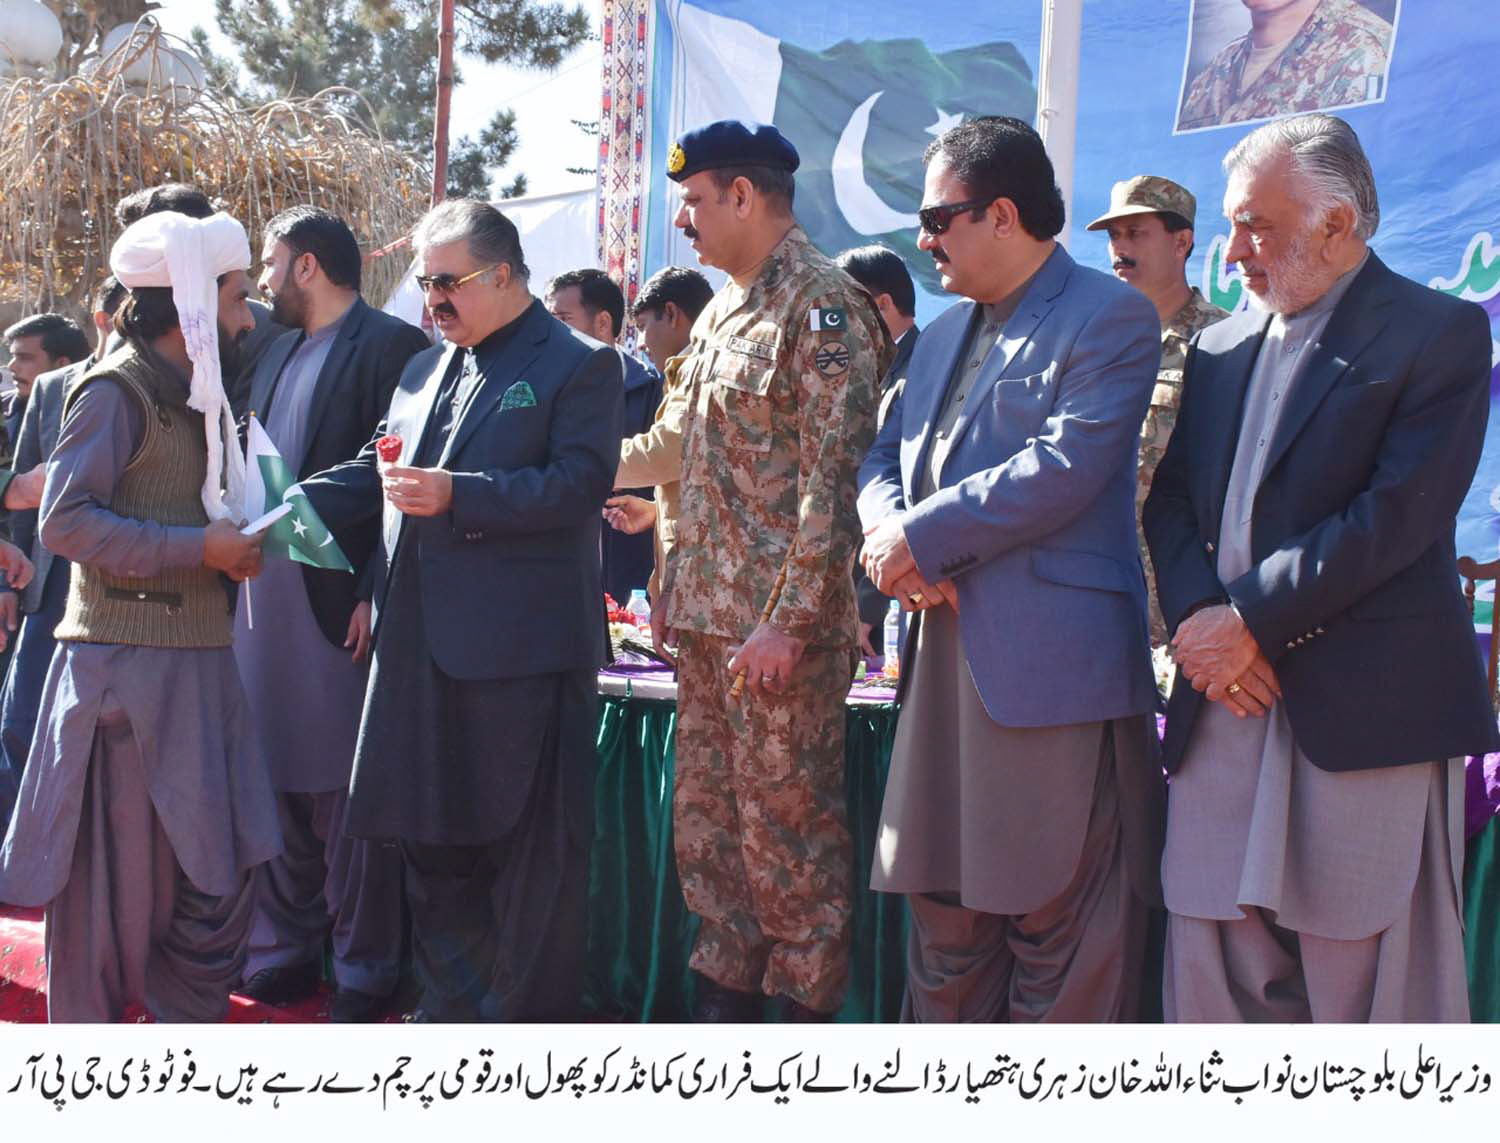 Balochistan Chief Minister Sanaullah Zehri and other officials meet Baloch fighters who surrendered before security forces in Quetta on Saturday. PHOTO: BANARAS KHAN/EXPRESS